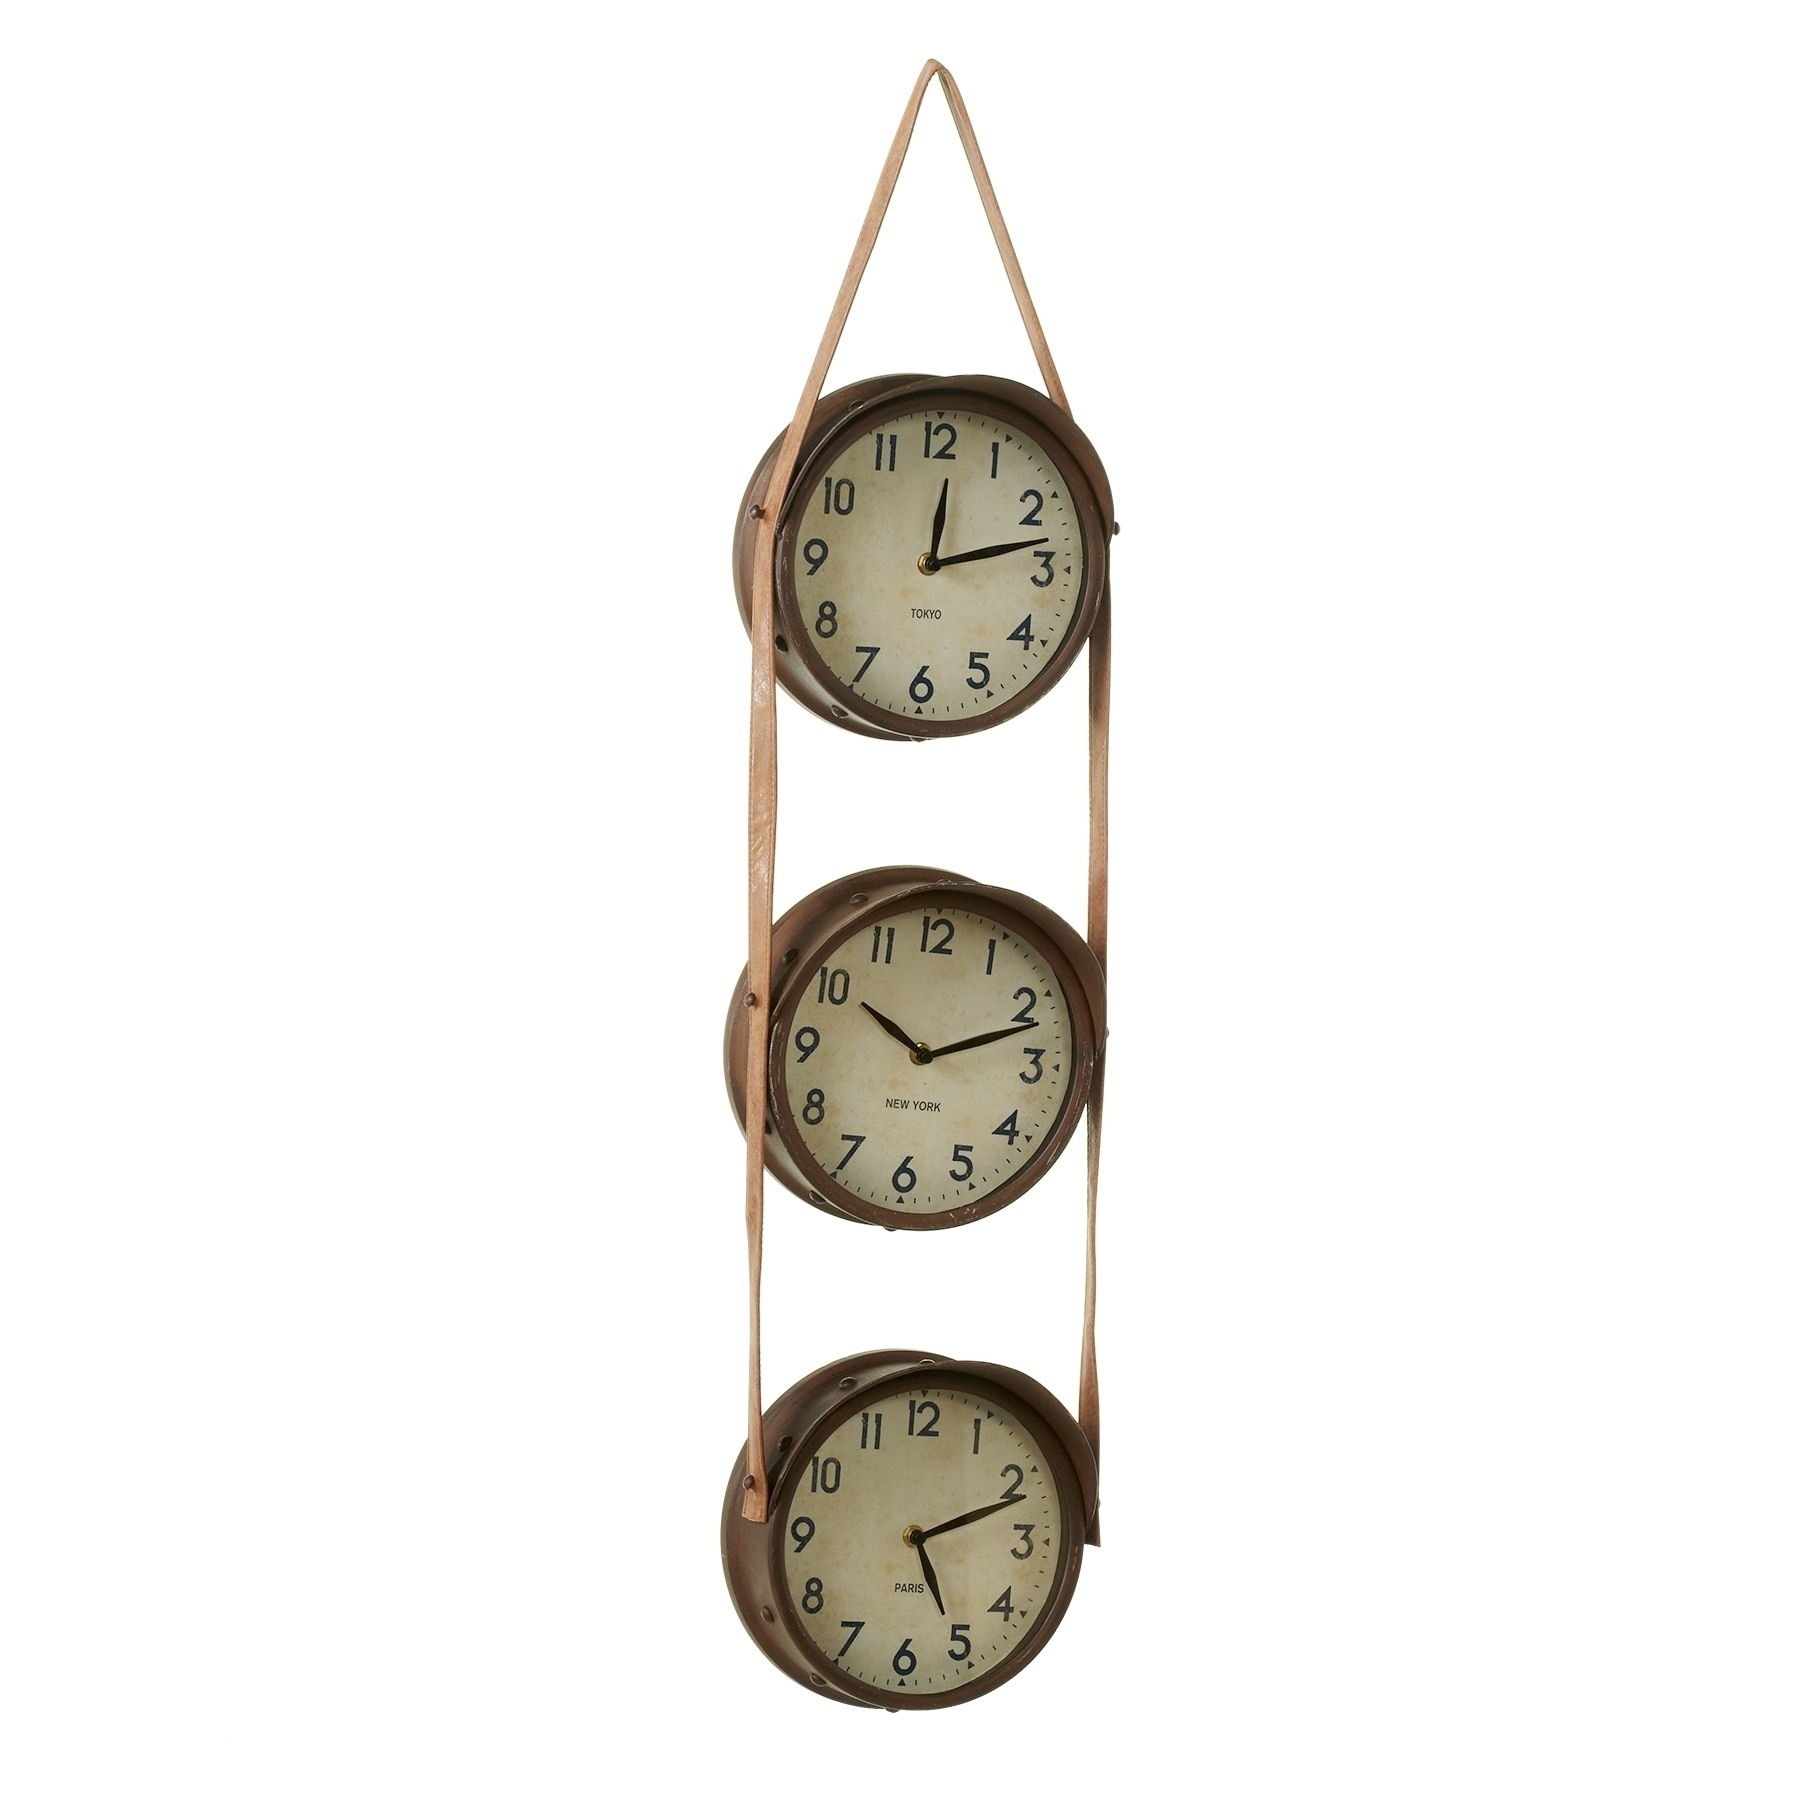 Shop Rusted Time Zone Wall Clock Hanging On Faux Leather Strap